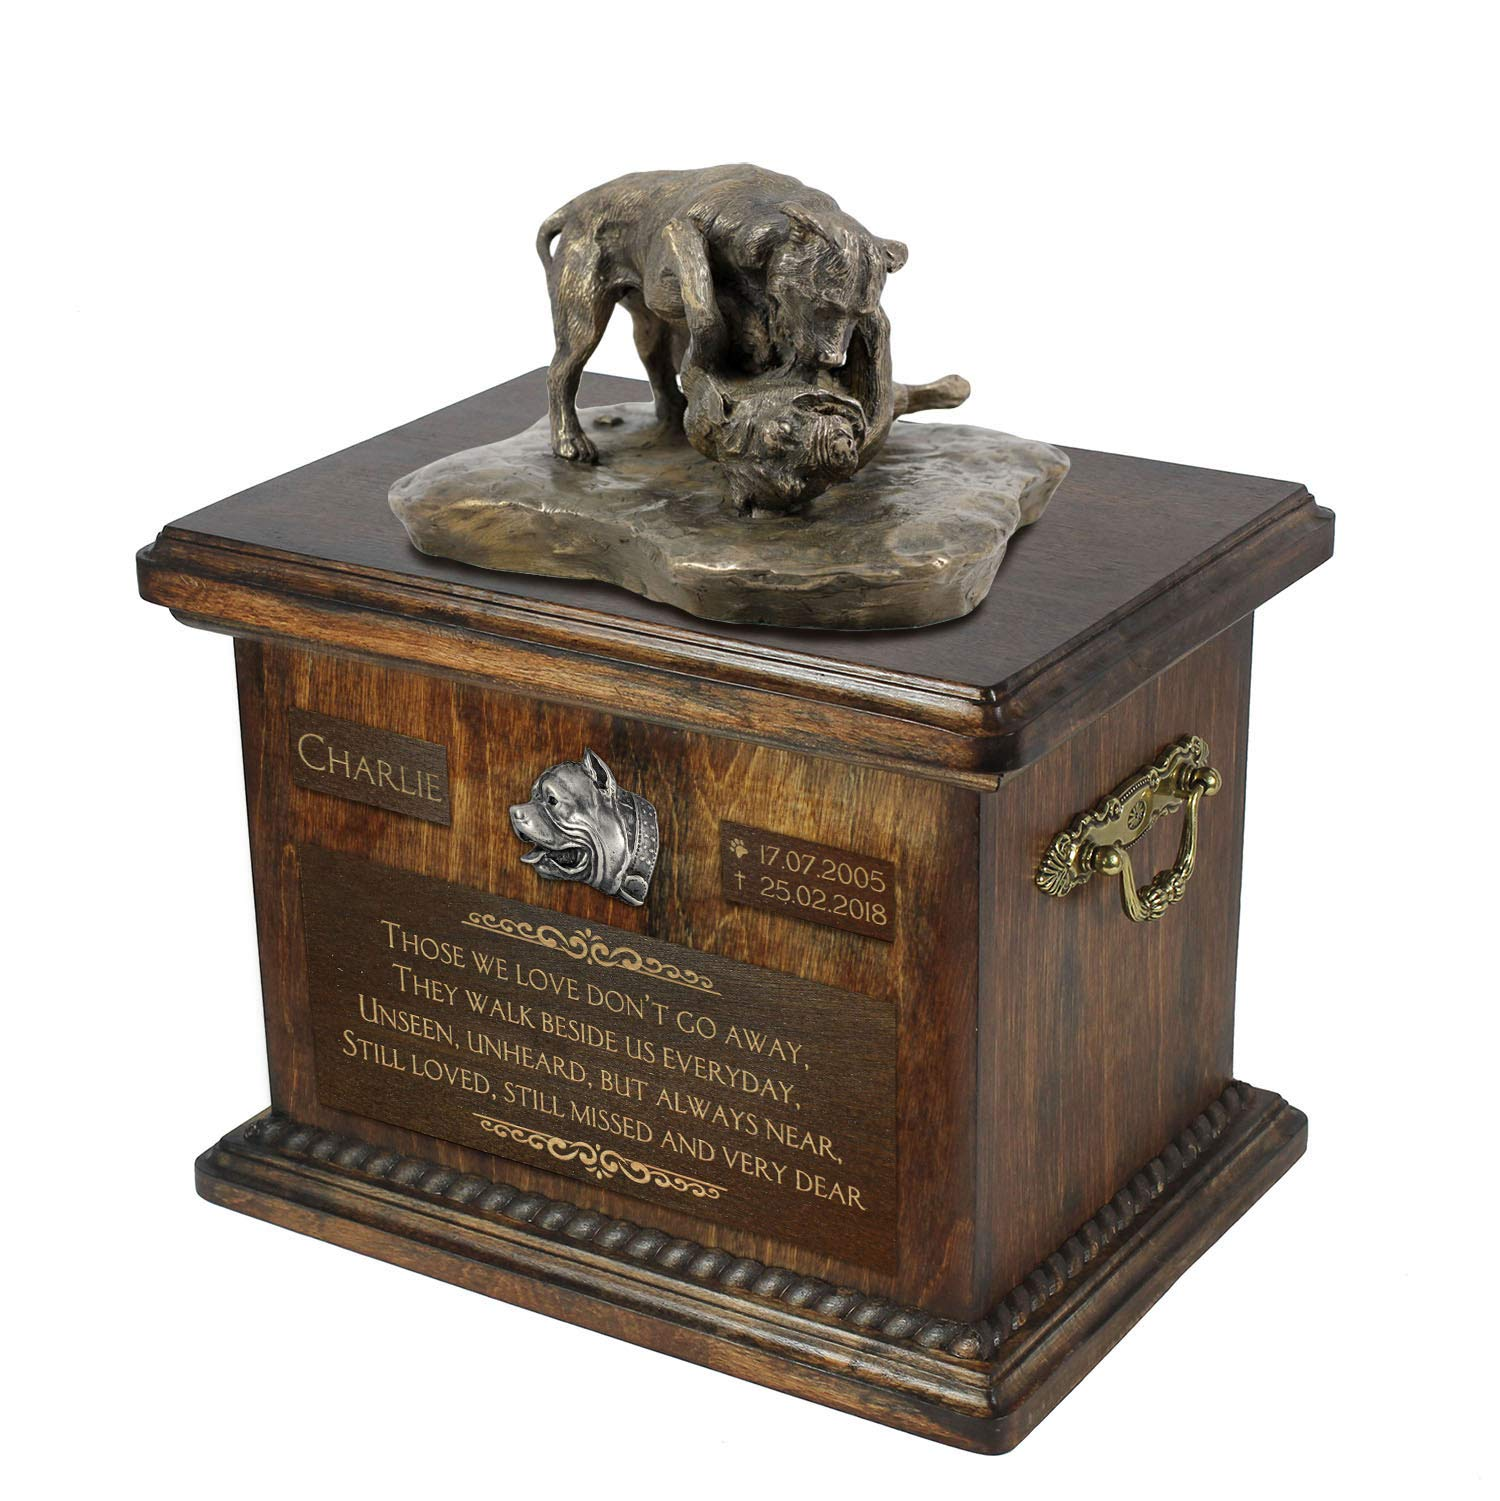 Pit Bull Fight, Urn for Dog Ashes Memorial with Statue, Pet's Name and Quote - ArtDog Personalized